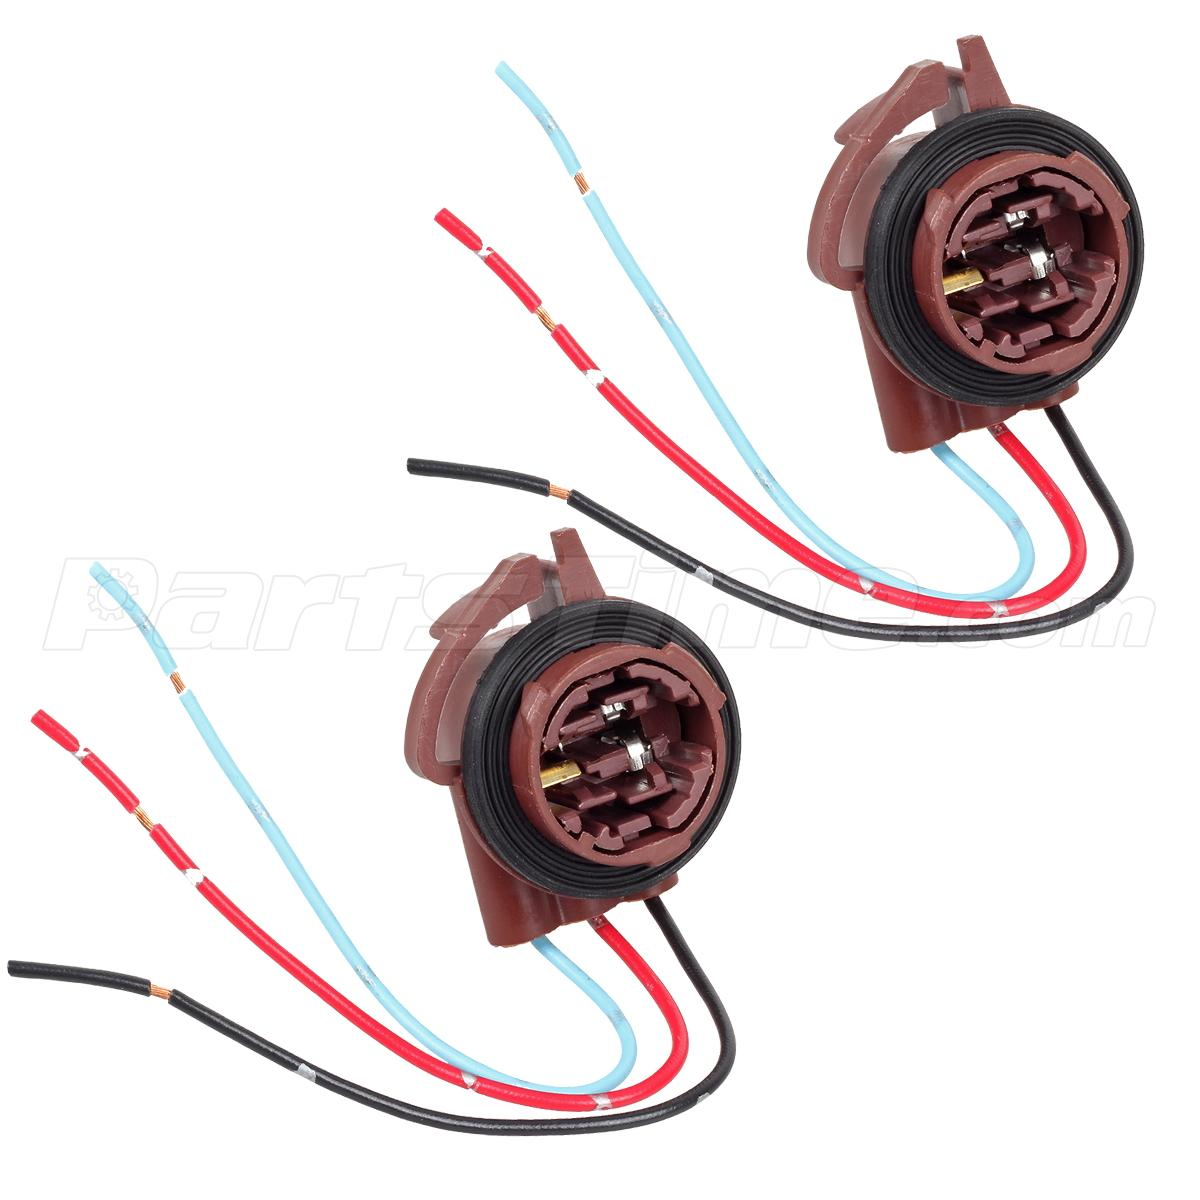 2xfemale socket pigtail plug for standard 3157 3156 3457